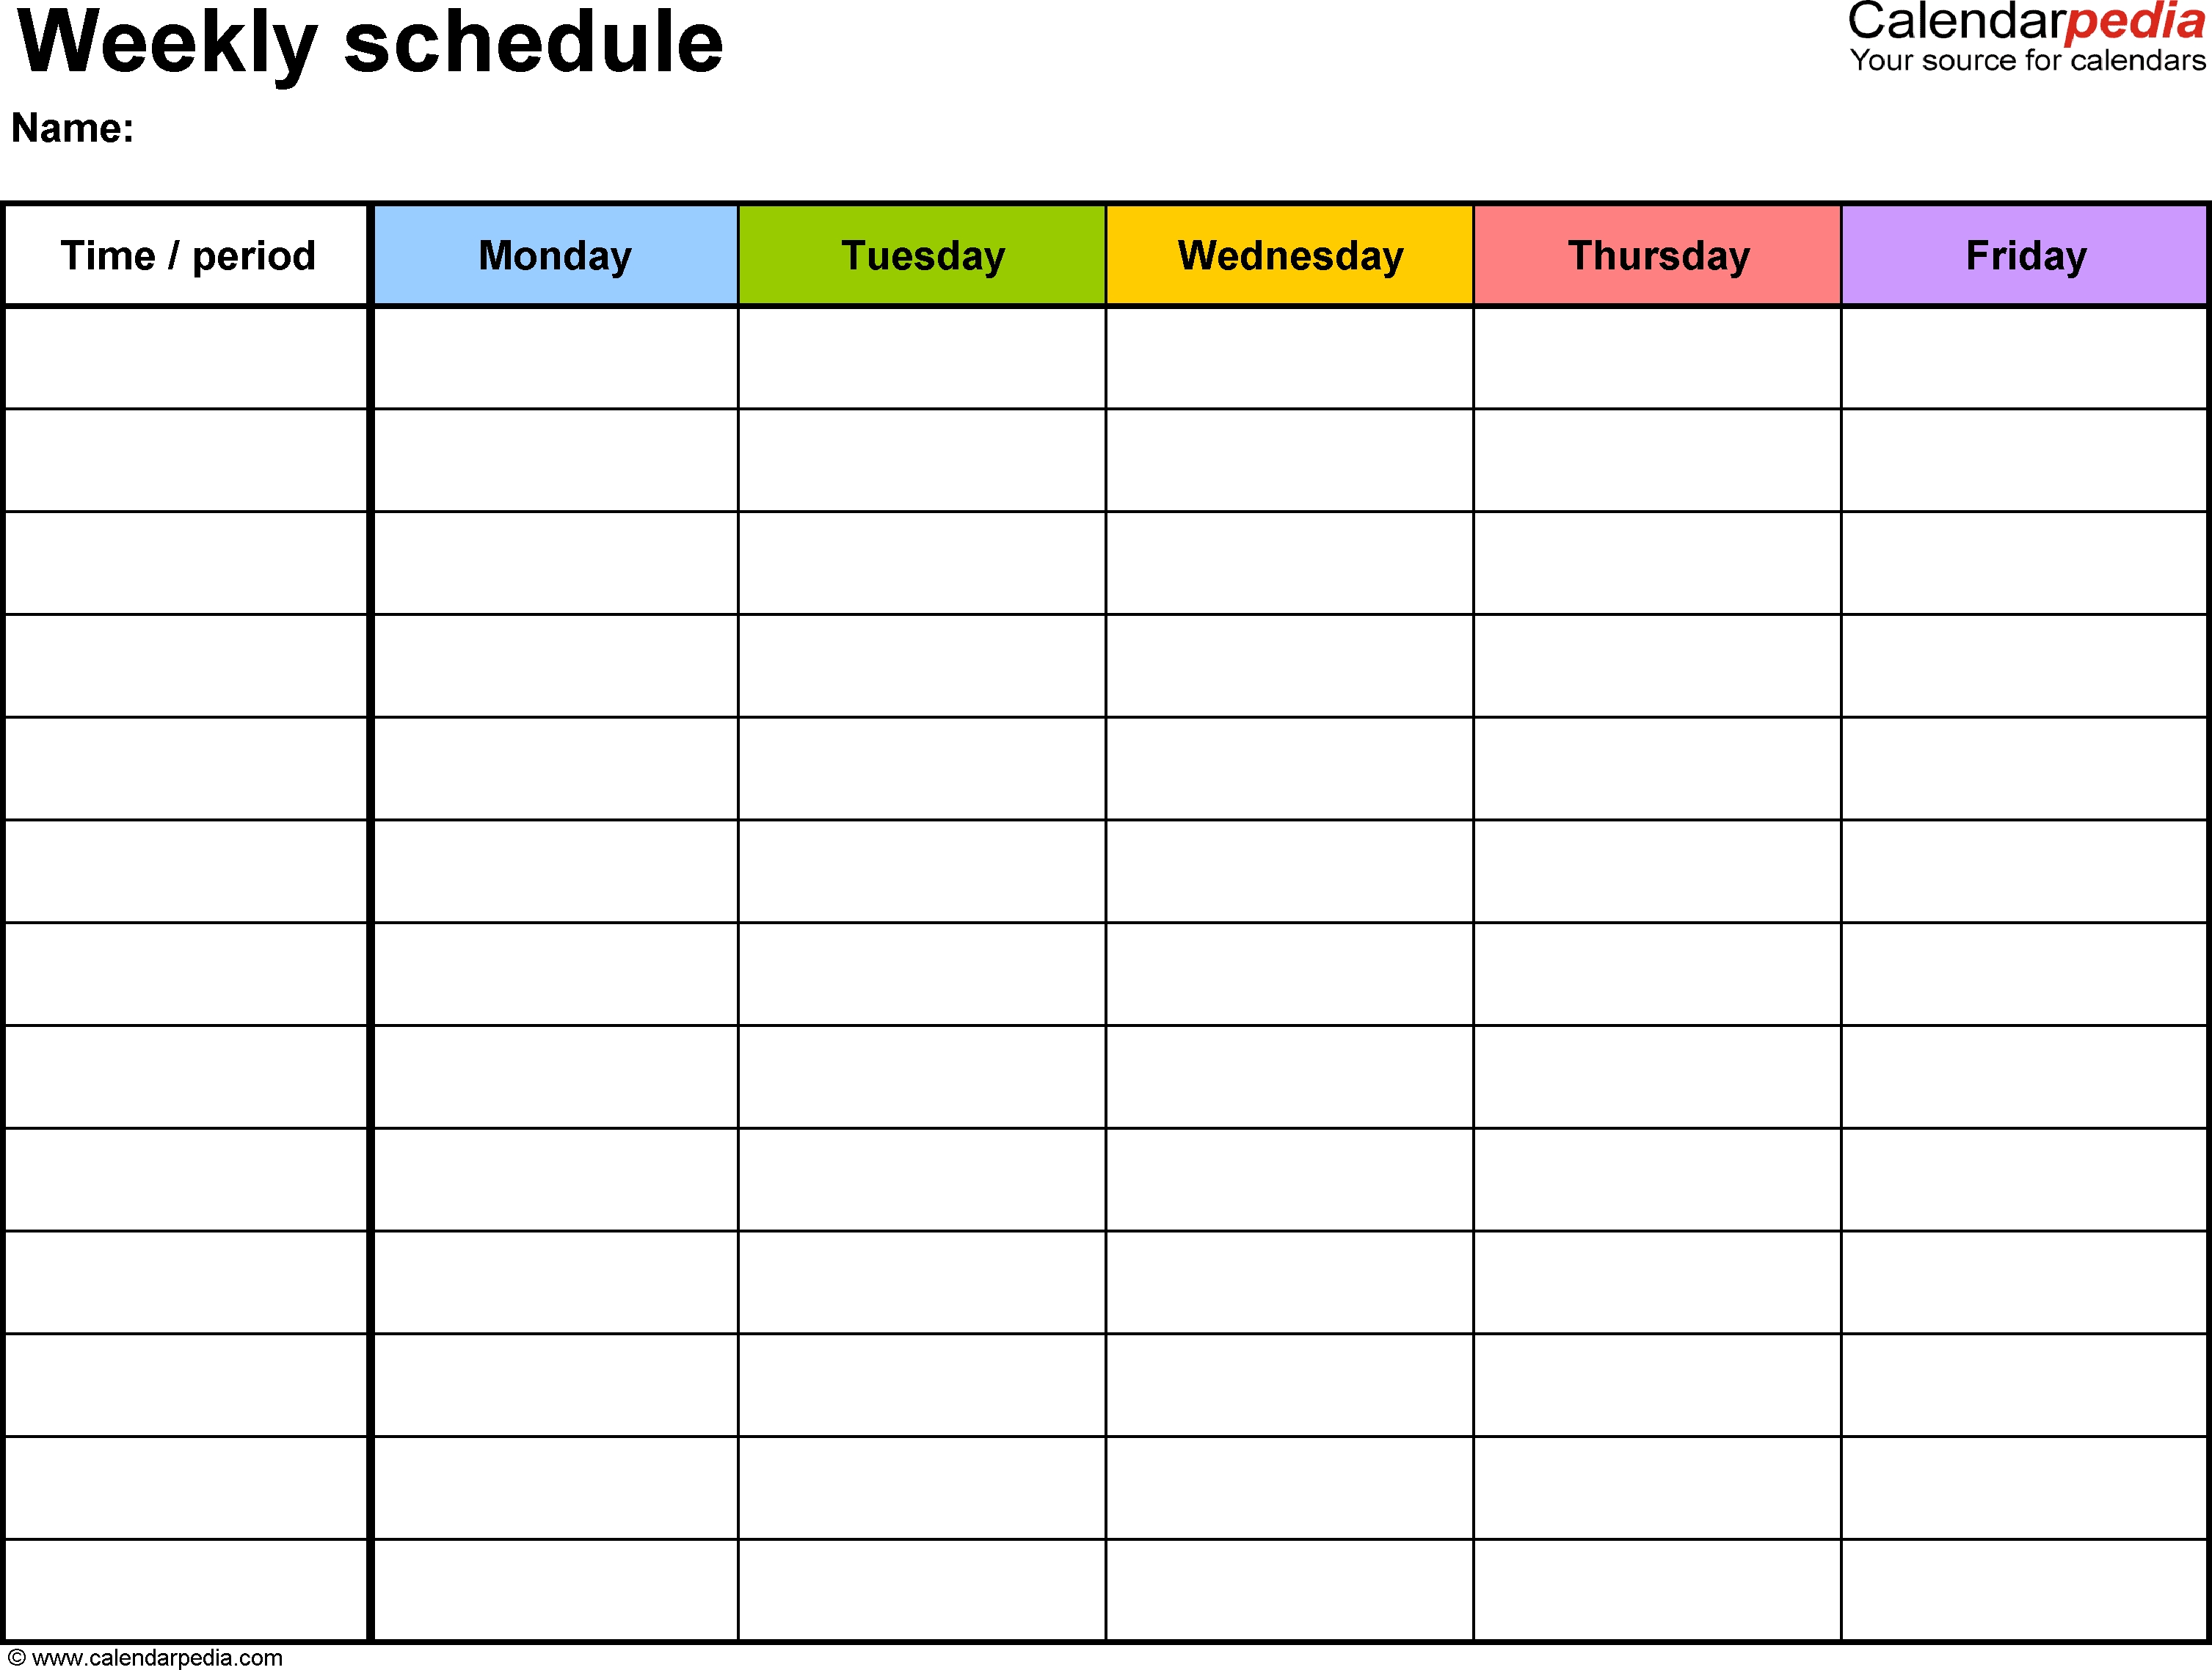 Weekly Schedule Template For Pdf Version 1: Landscape, 1 in 1 Week Blank Calendar Free Printable